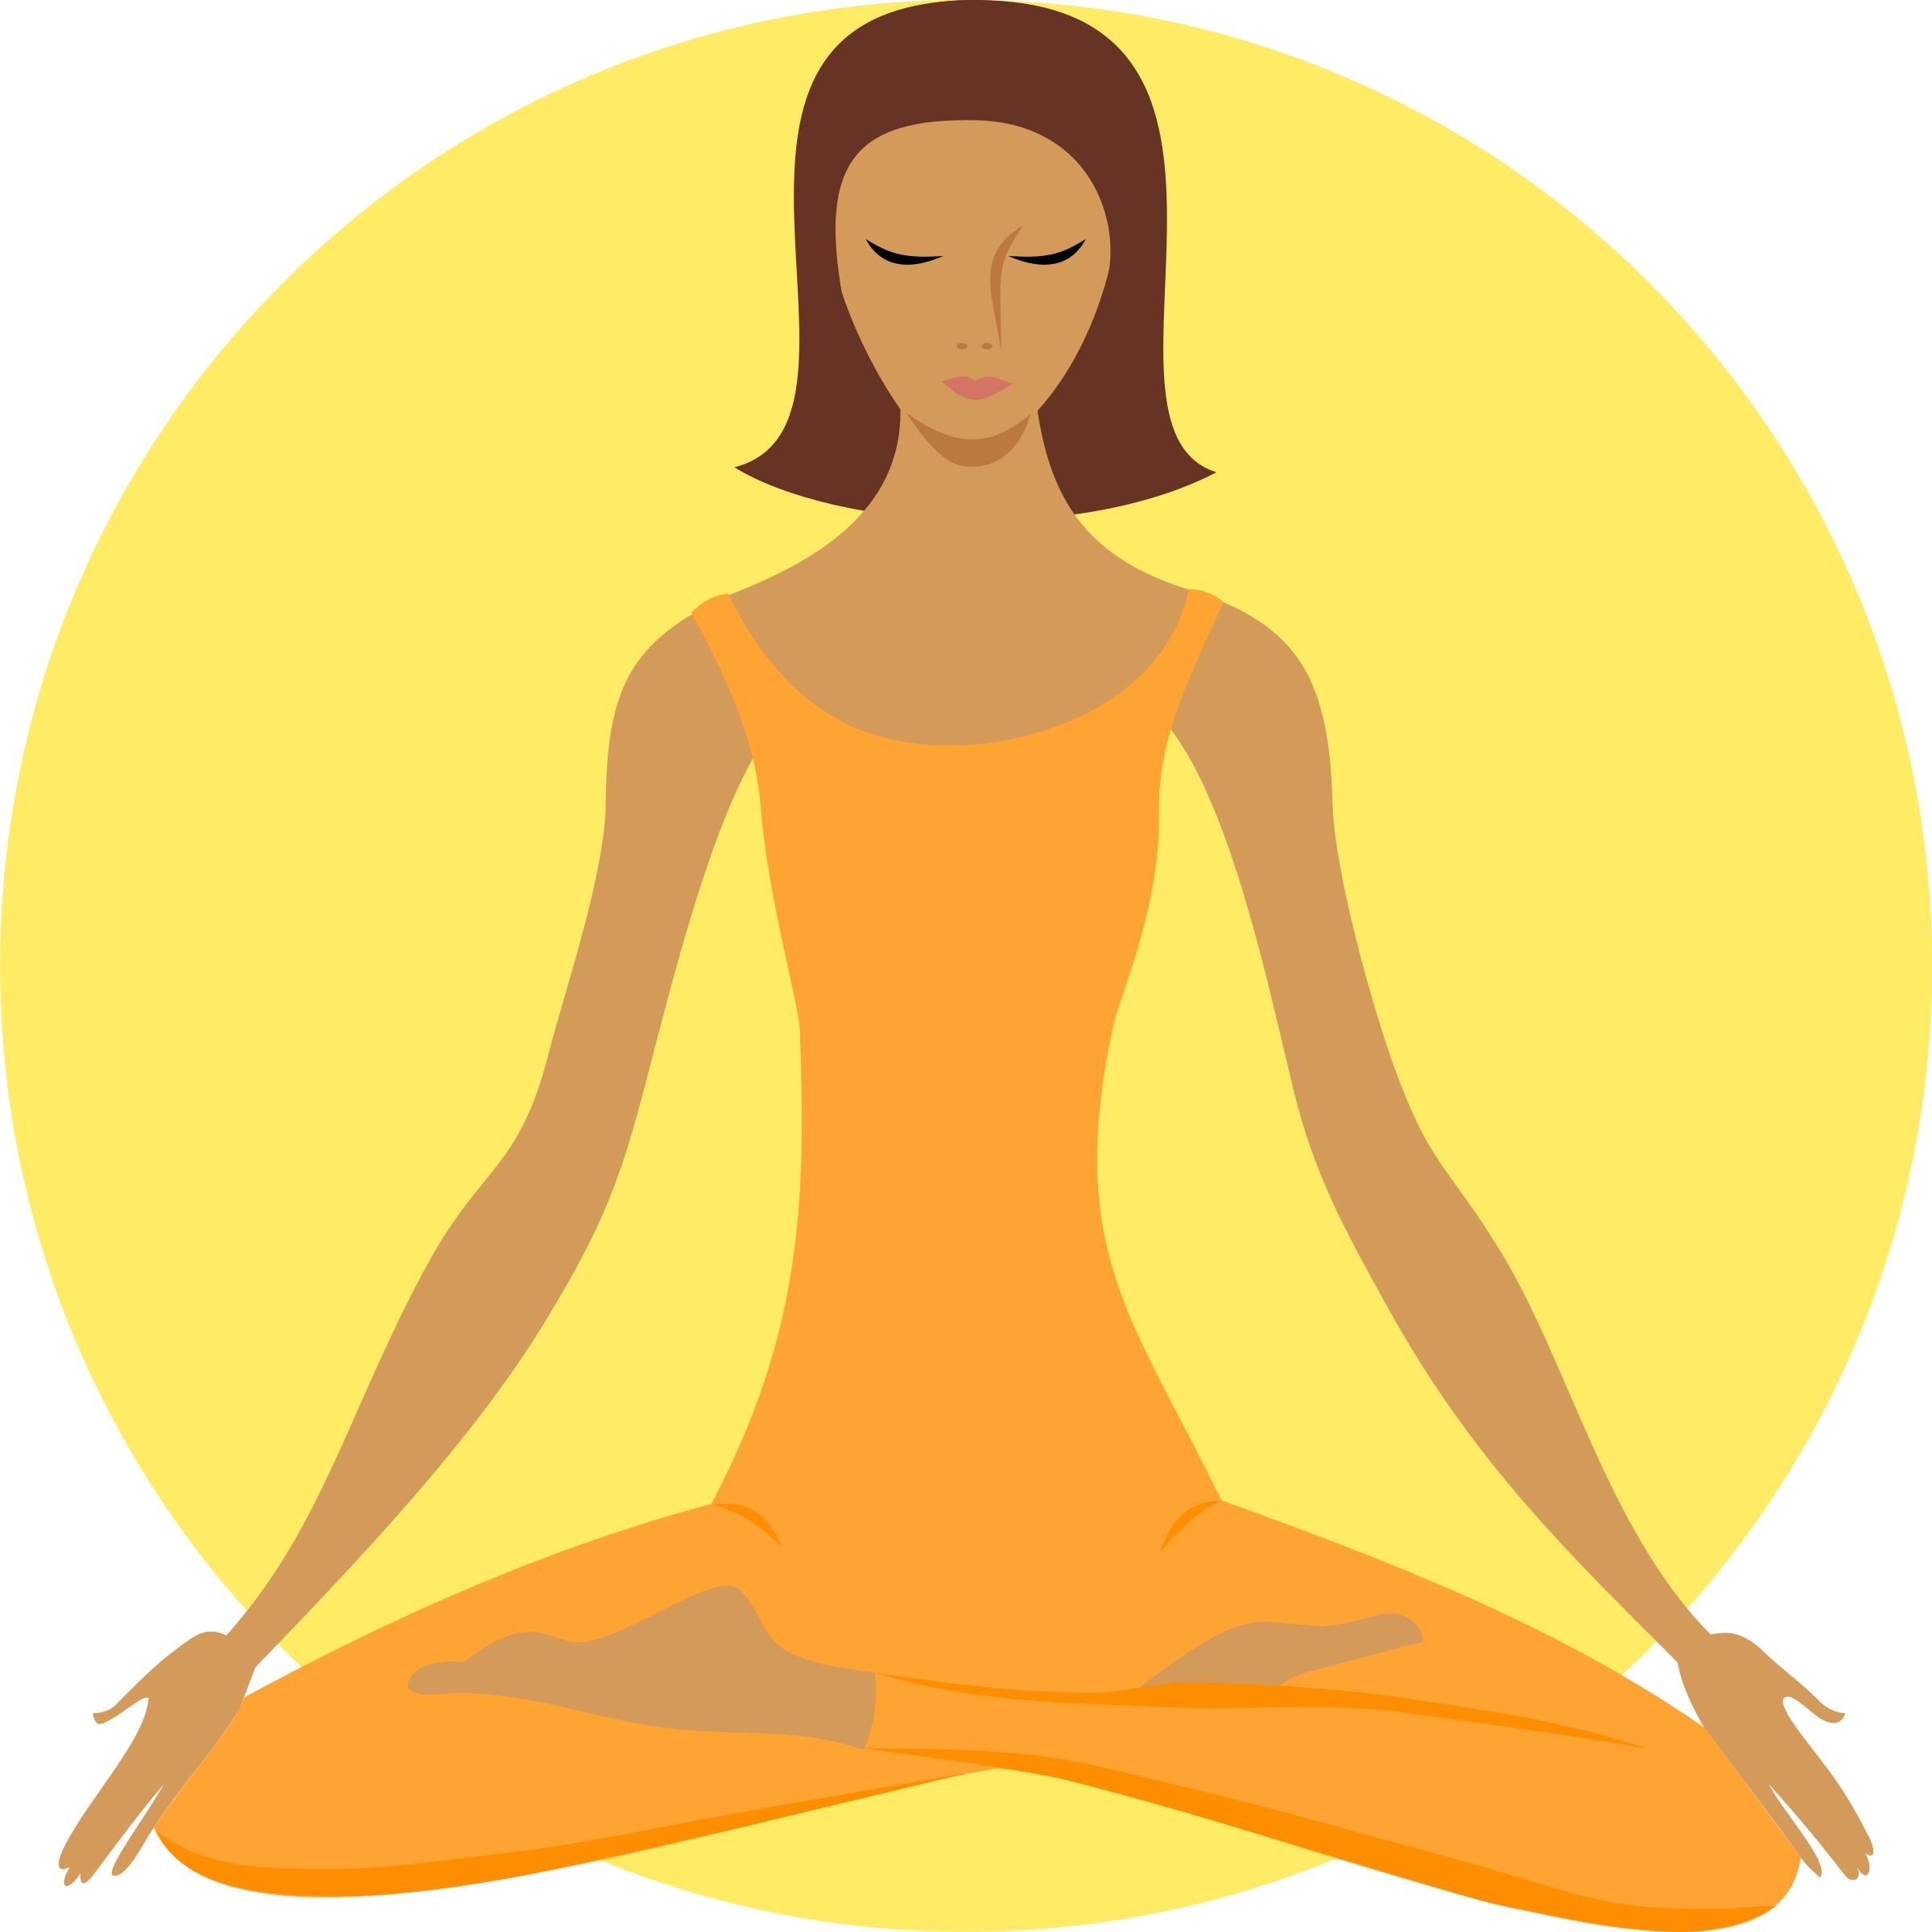 Remix Of Clker Clipart Woman In Yoga Position